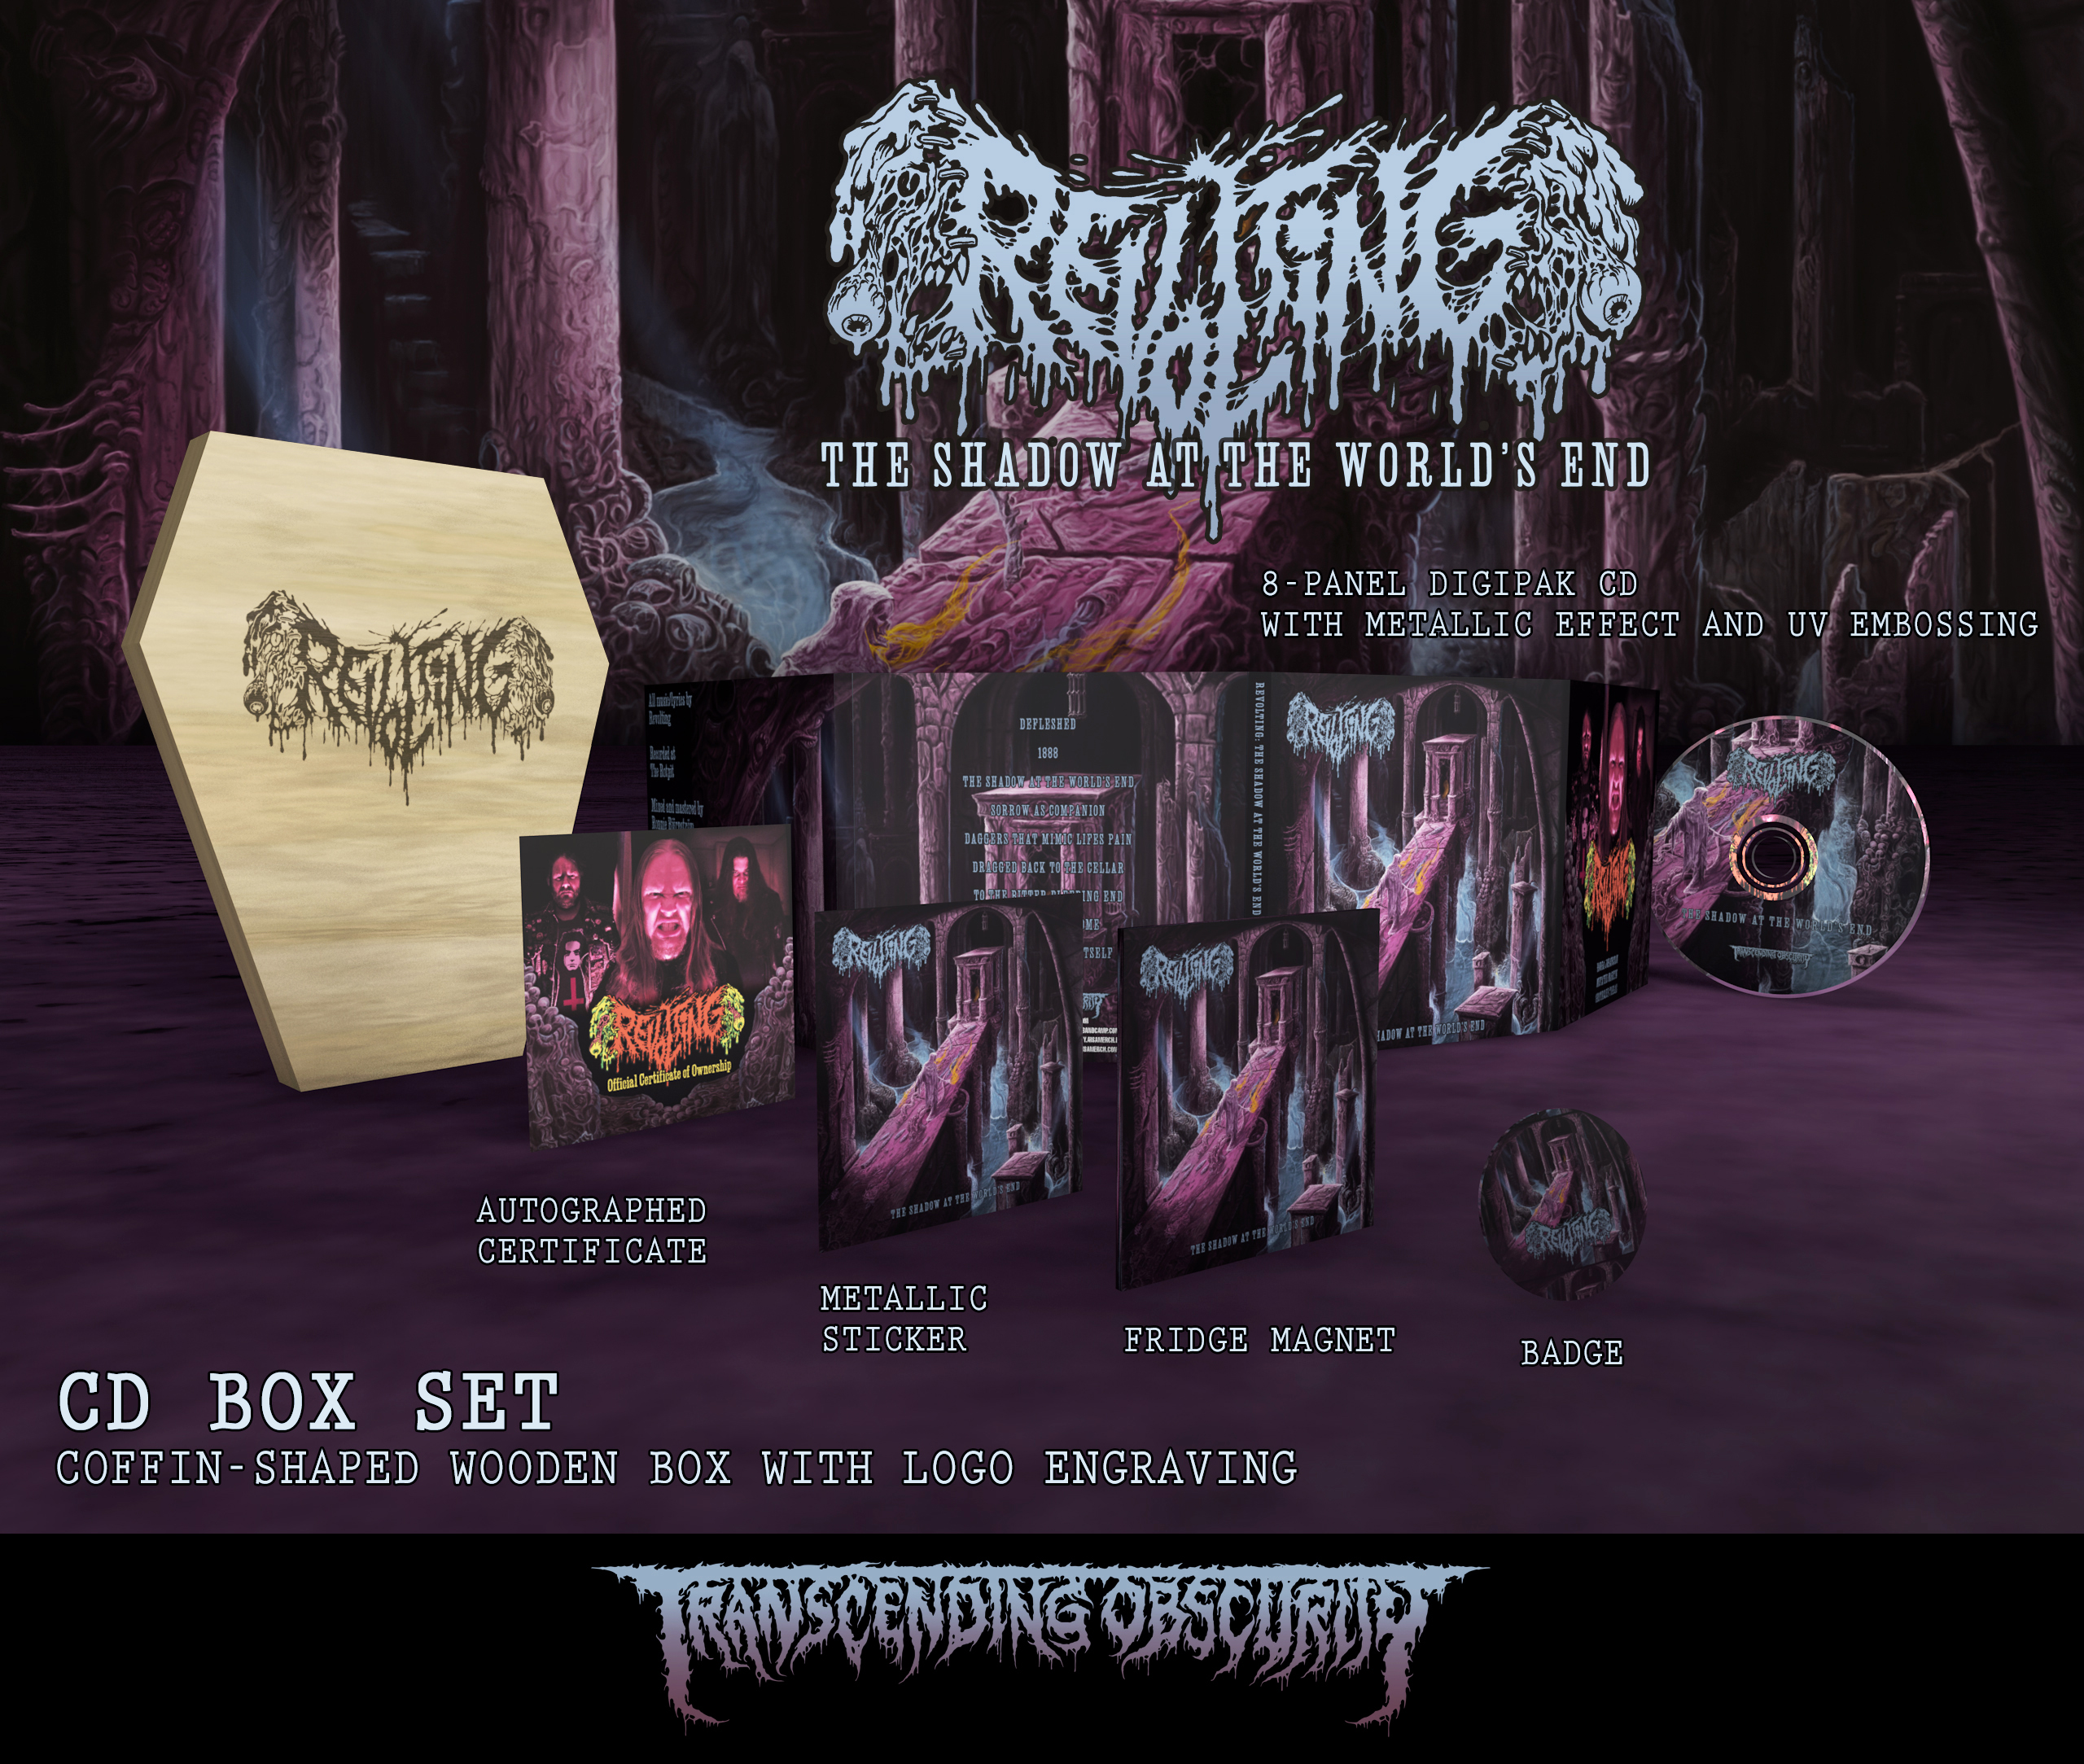 REVOLTING - The Shadow At The World's End Coffin-Shaped Wooden CD Box Set (Limited to 100)